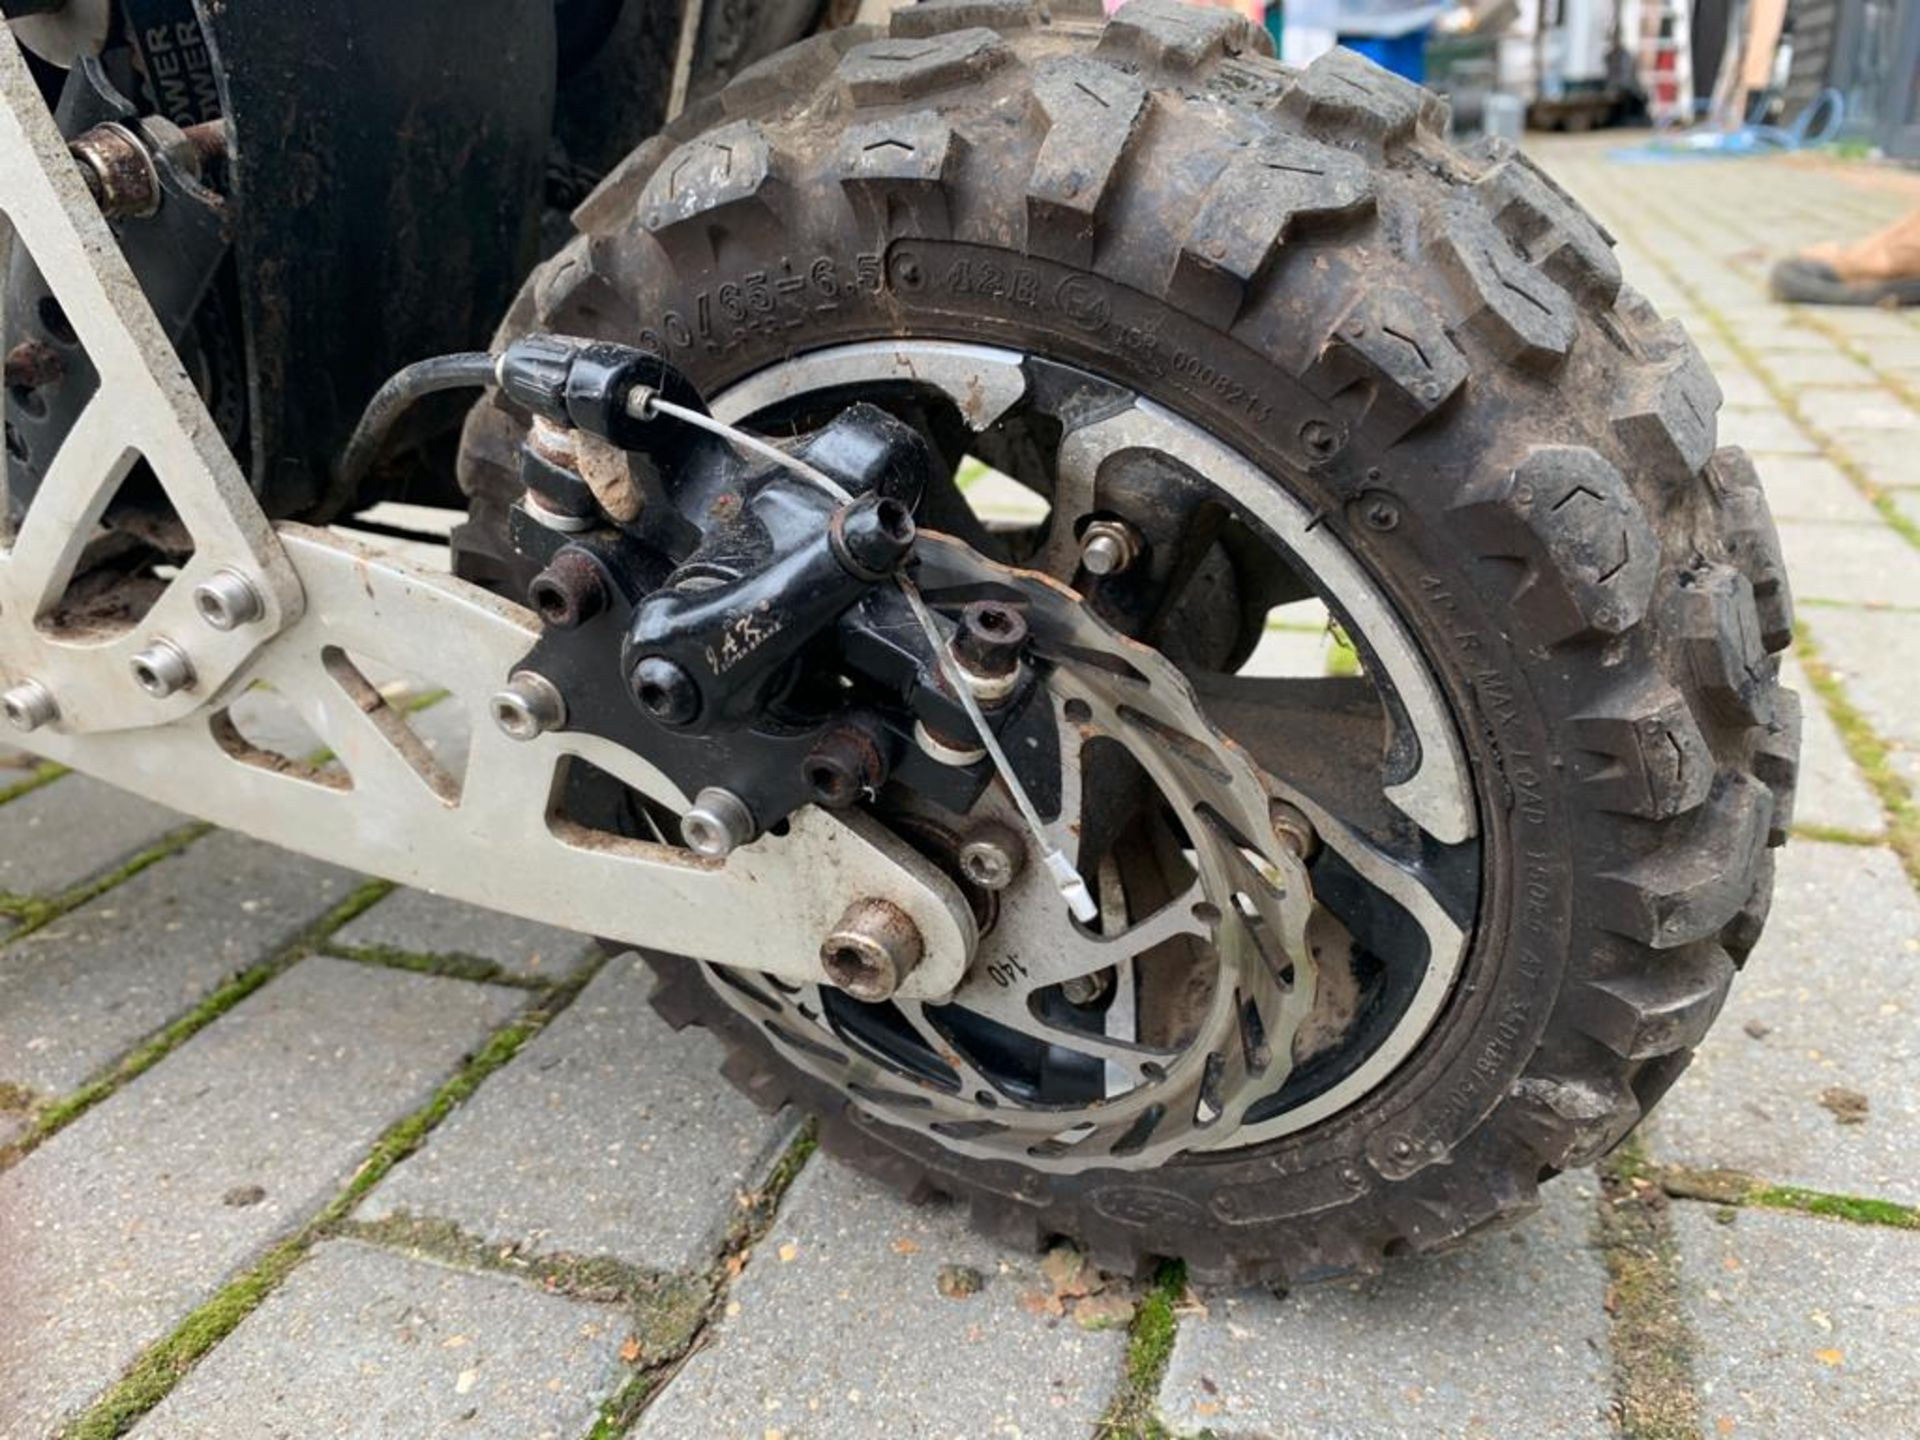 2-STROKE RIDE ON SCOOTER, RUNS AND DRIVES AS IT SHOULD *PLUS VAT* - Image 4 of 8